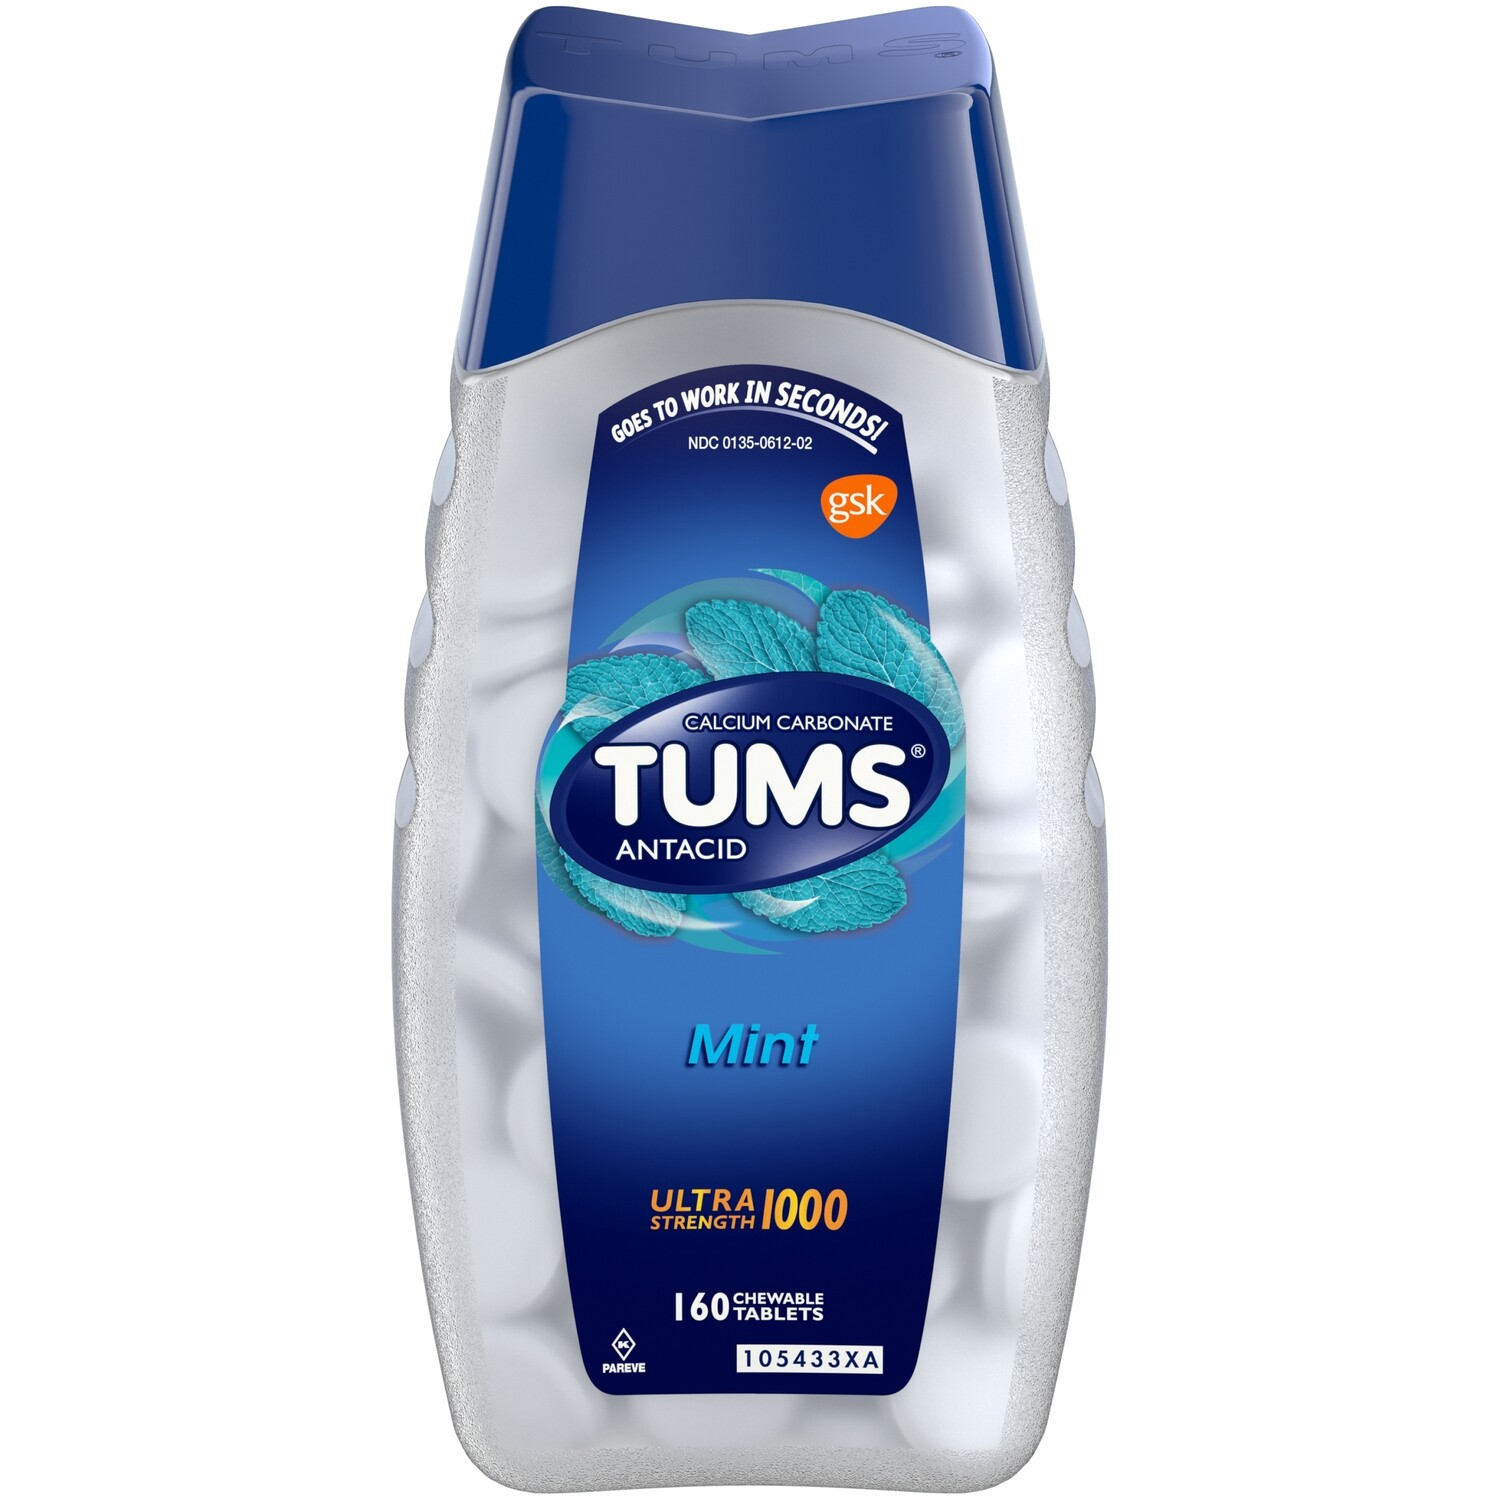 TUMS ULTRA STRENGTH 1000  Antacid Jumbo Pack of 160 Chewable Tablets - PEPPERMINT (GLUTEN FREE)